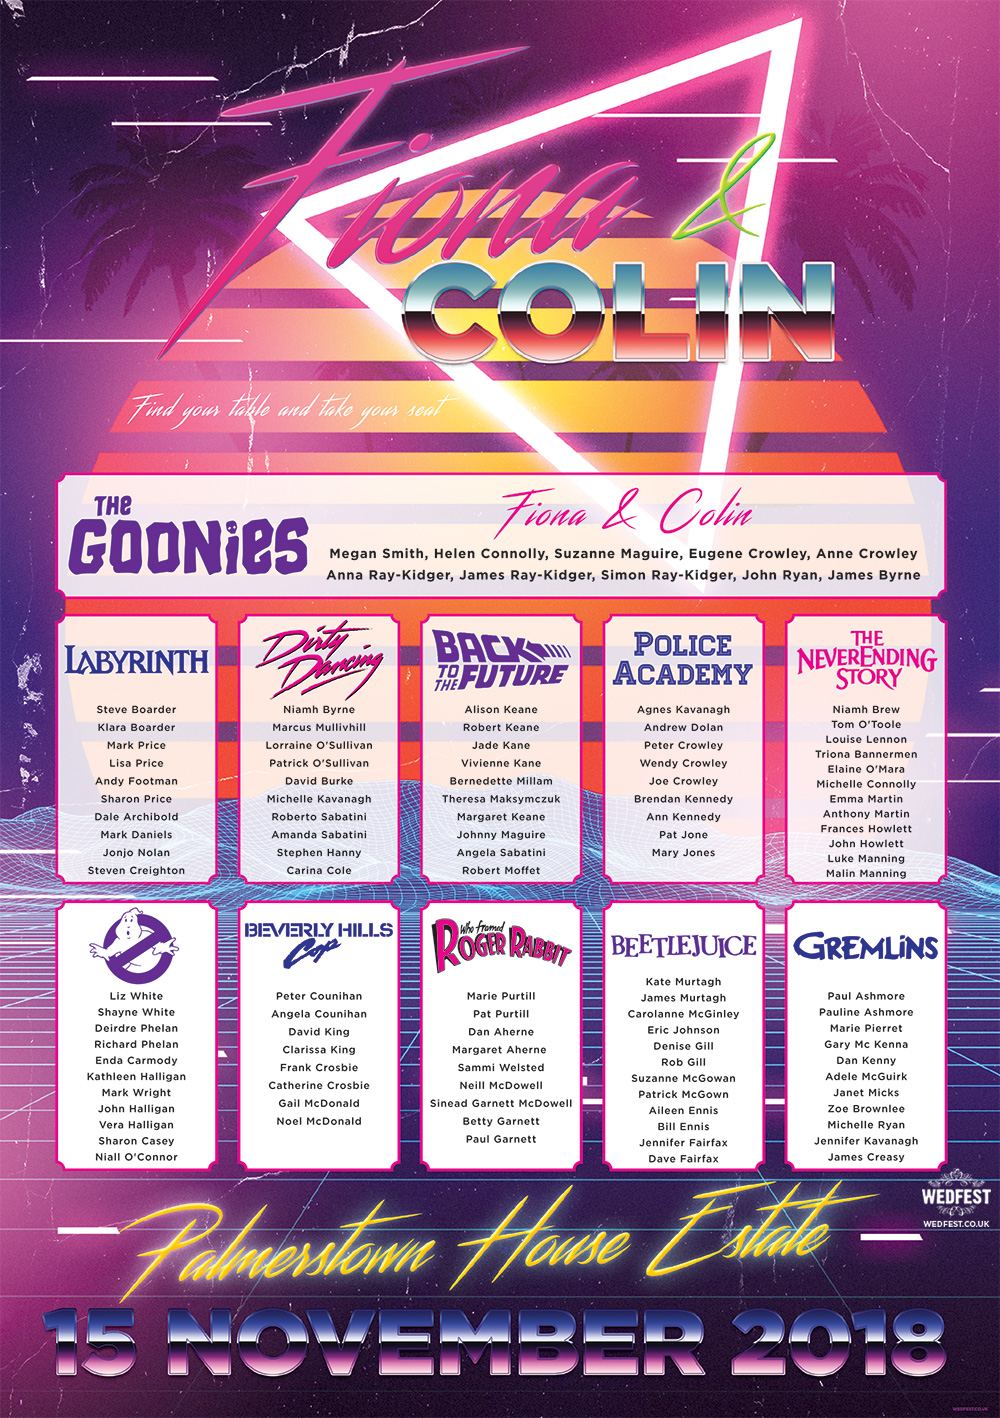 80s movies neon synthwave retro wedding table plan